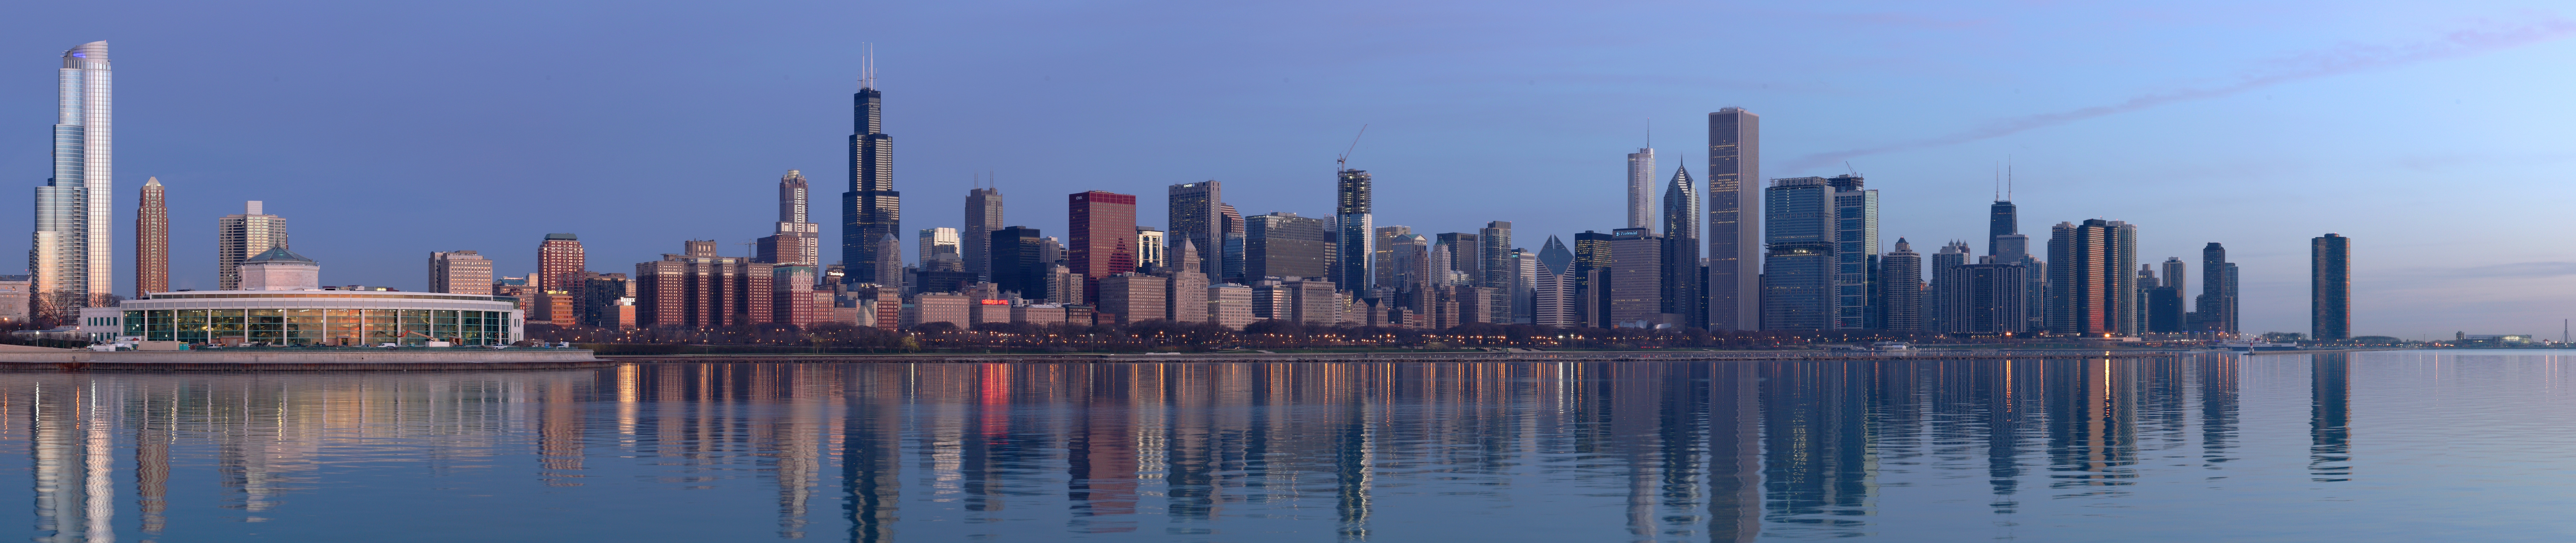 Chicago_sunrise_2b.jpg